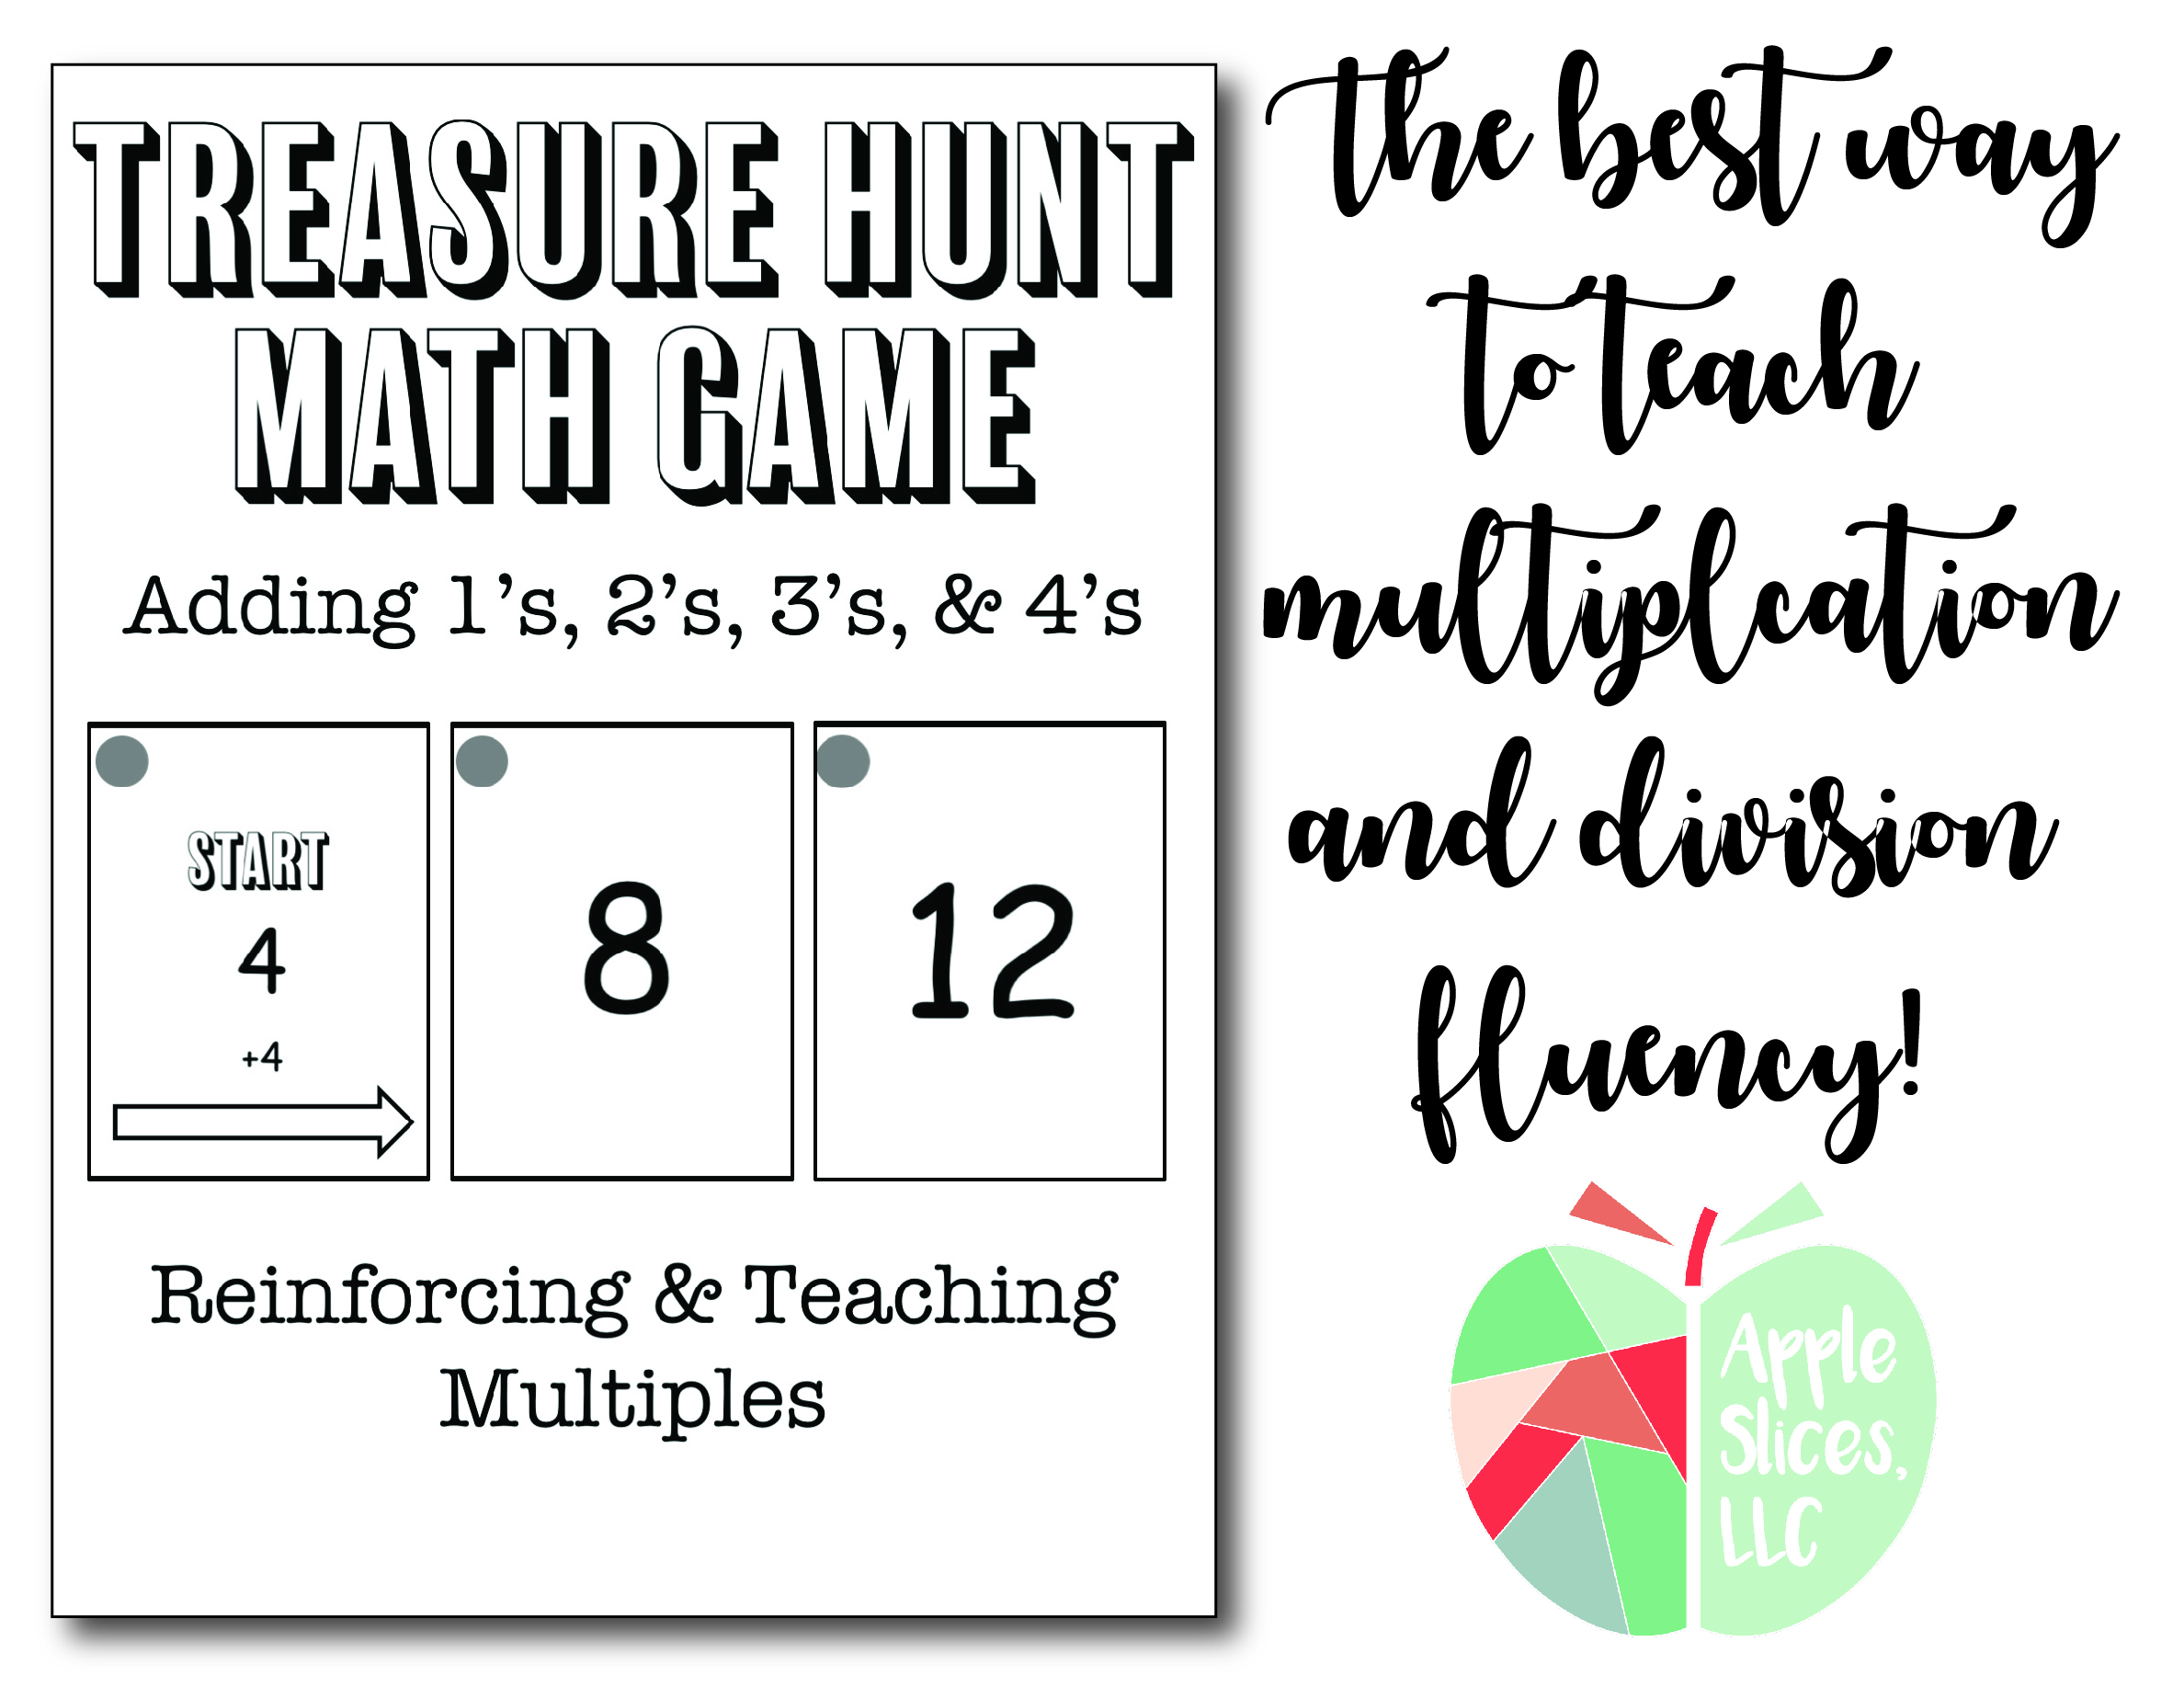 Treasure Hunt Math Game